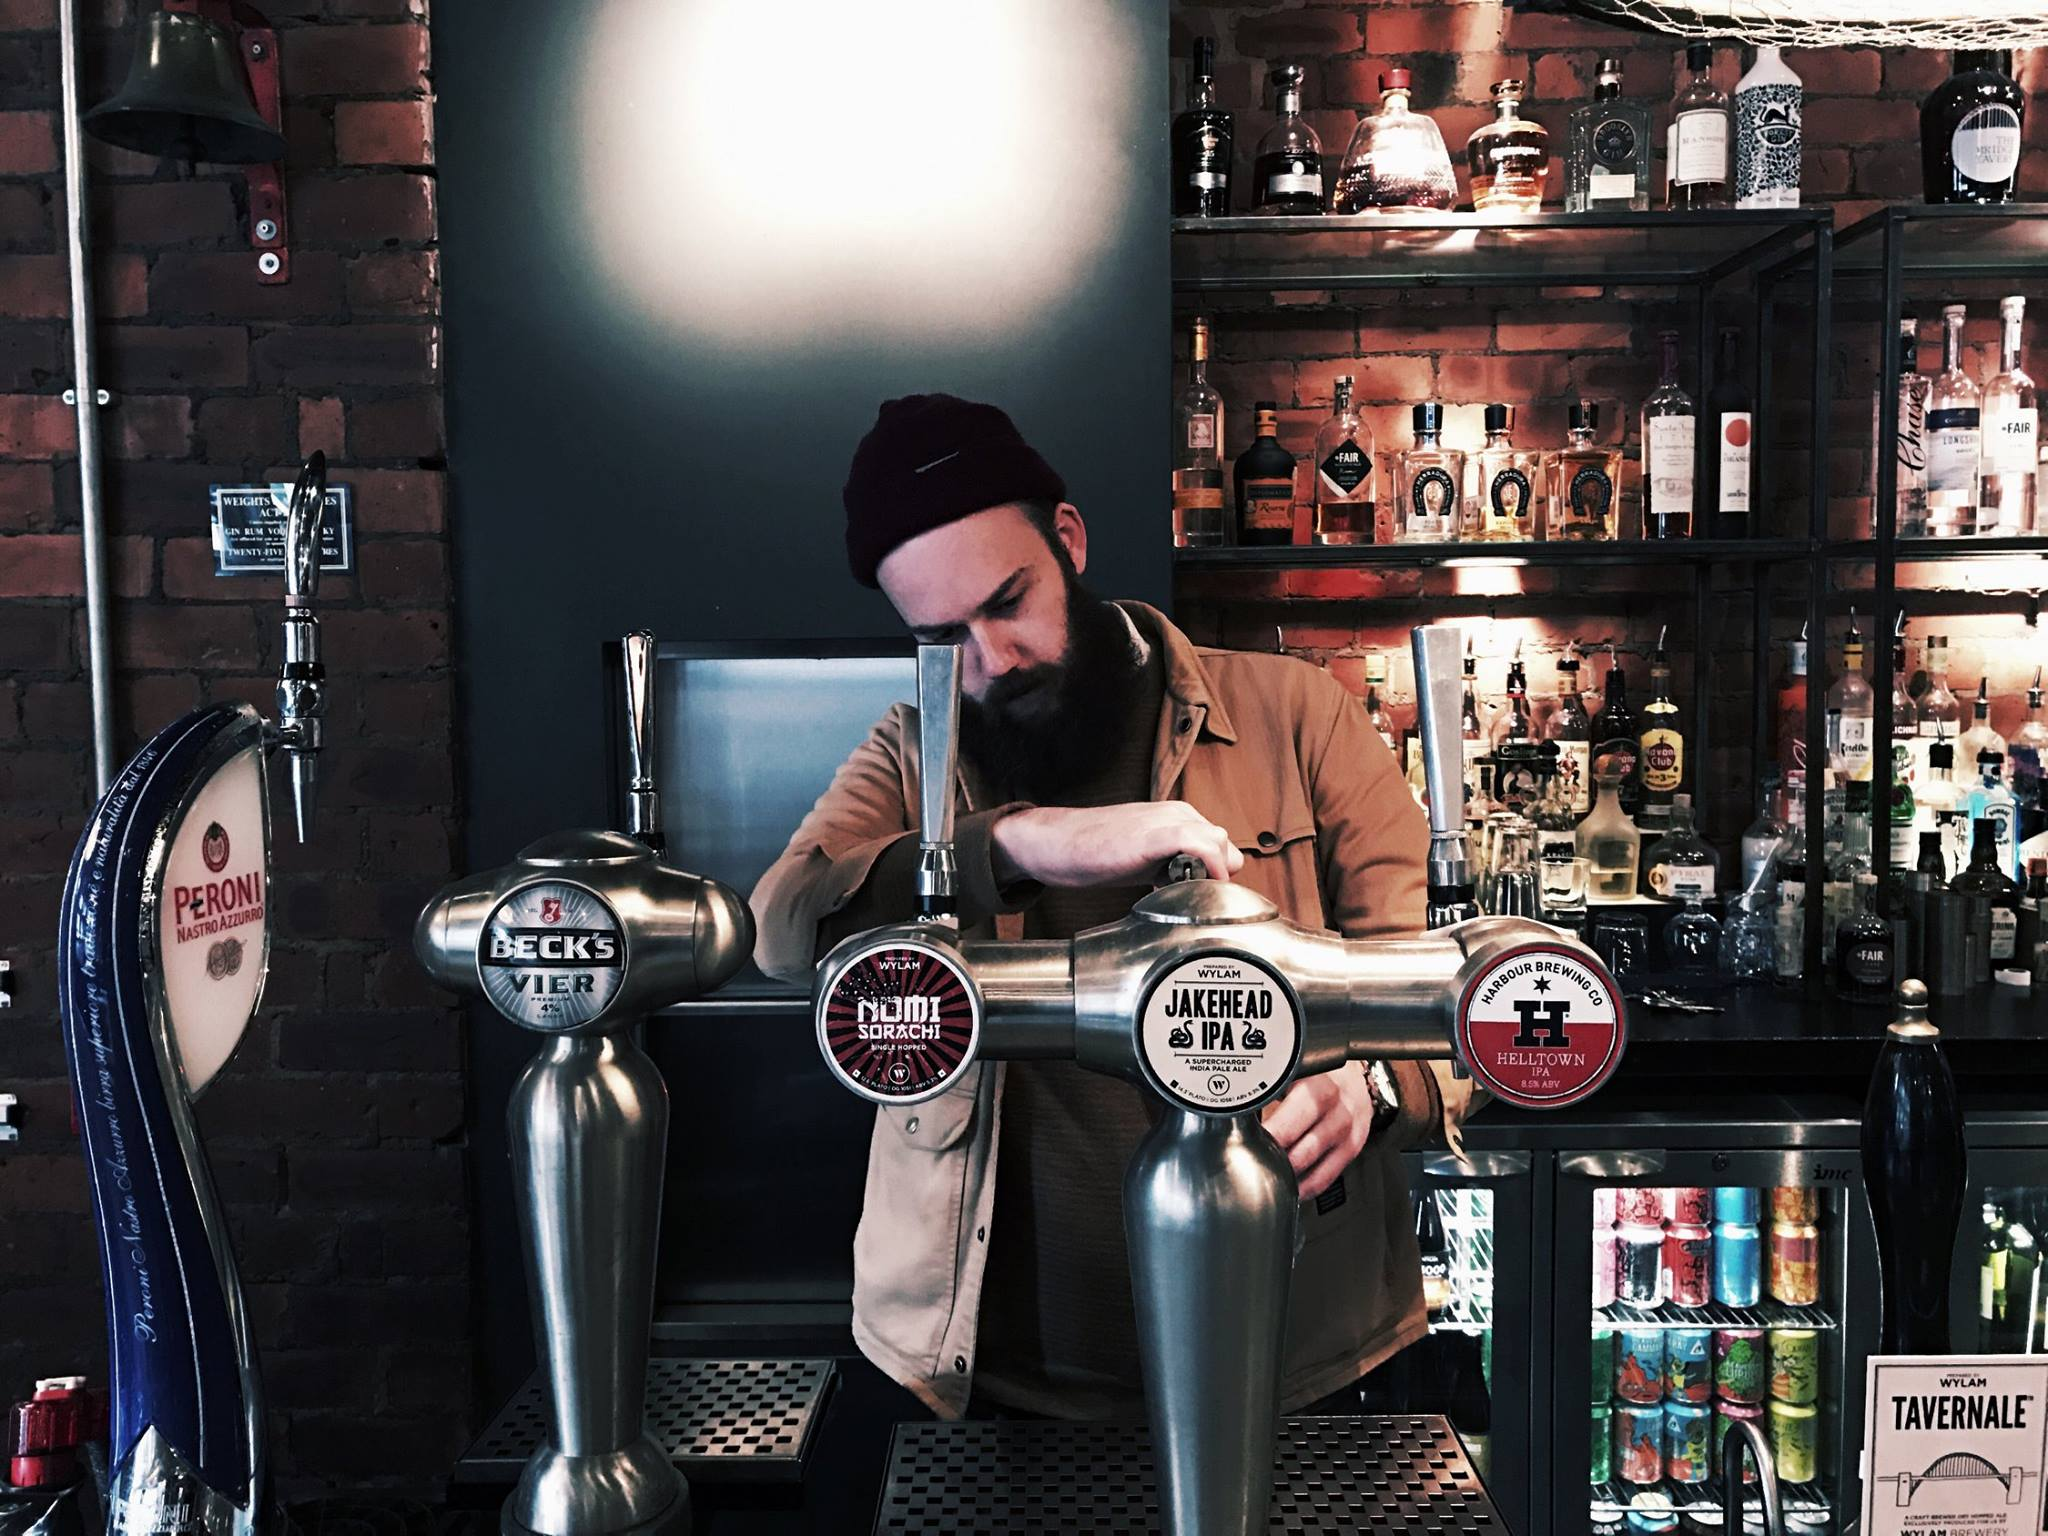 Newcastle's craft beer bars, featuring an image of a bartender pouring a pint at The Bridge Tavern, Newcastle